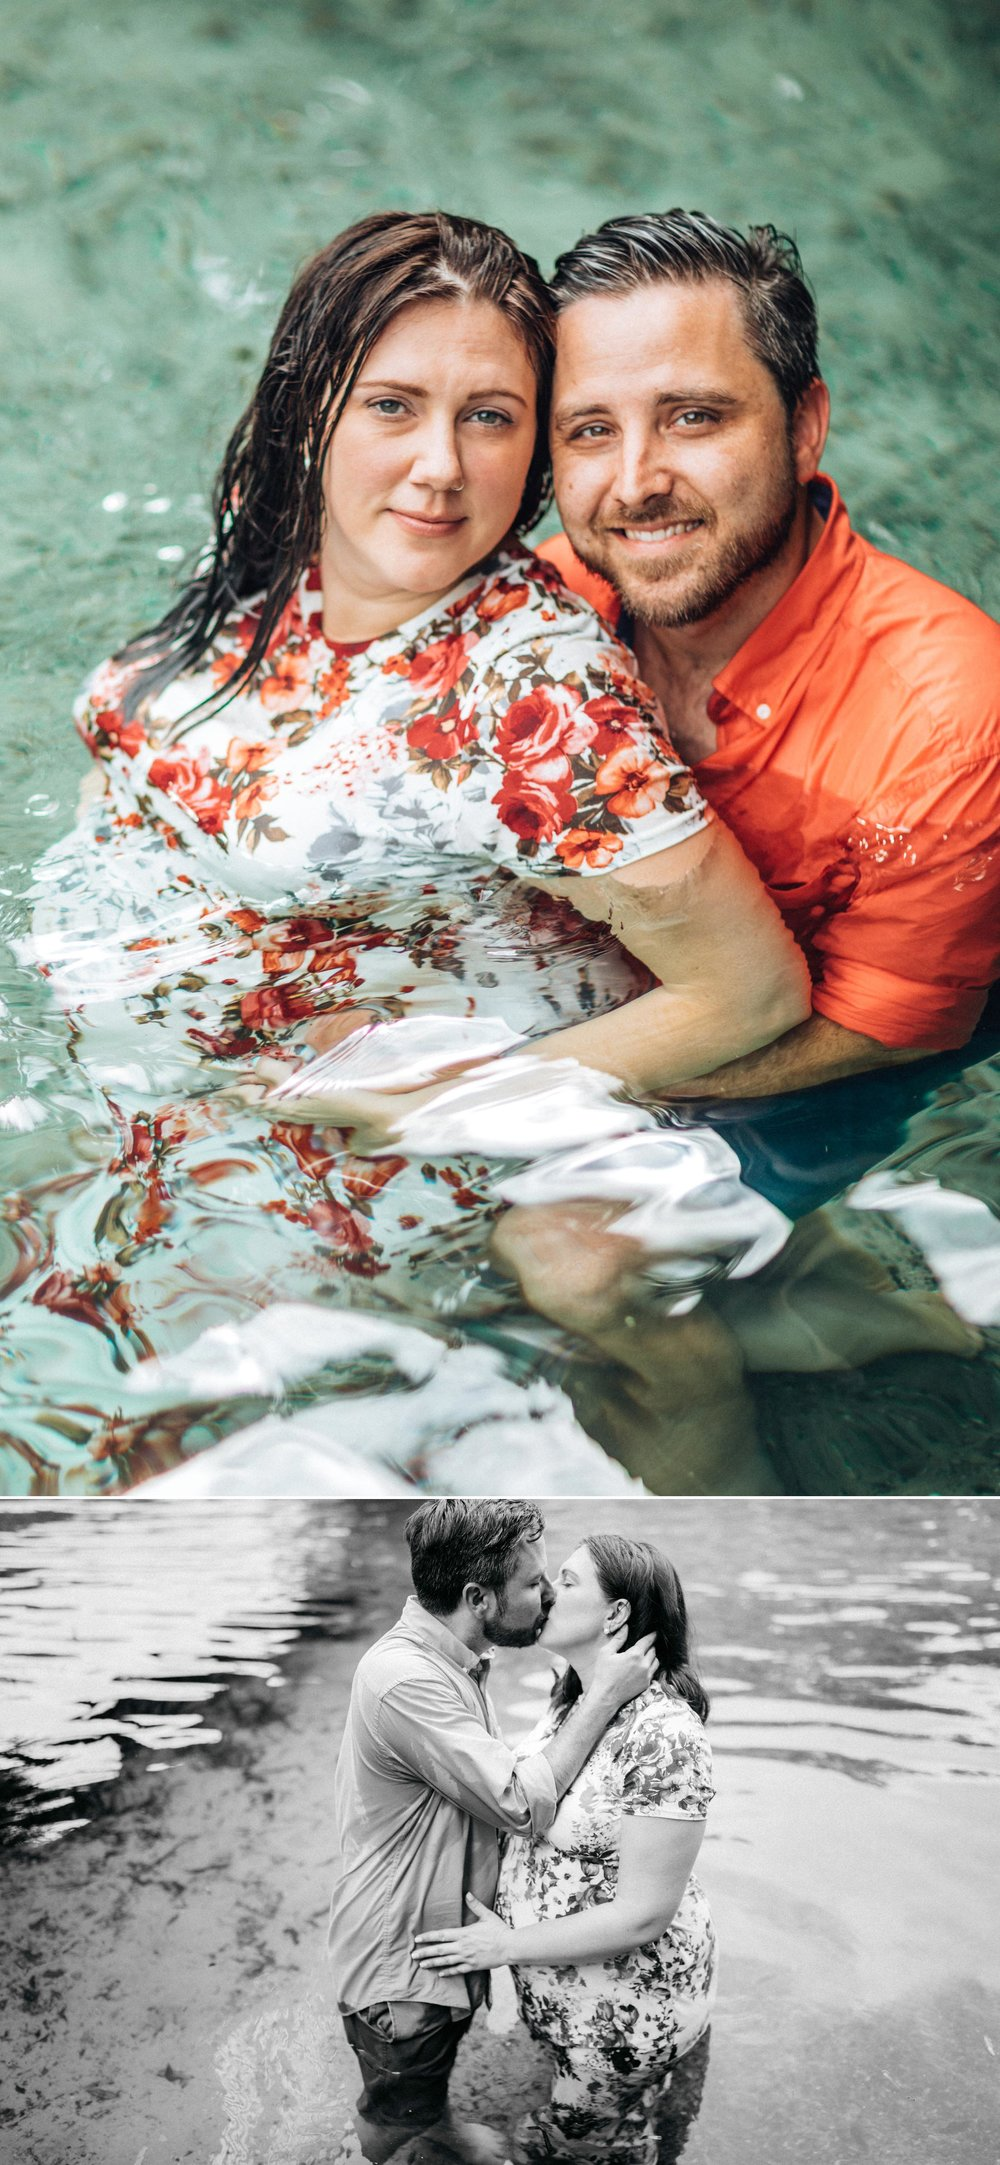 Boho Florida Maternity Photo Session- Kelly Springs State Park-Meghan+Michael8.jpg